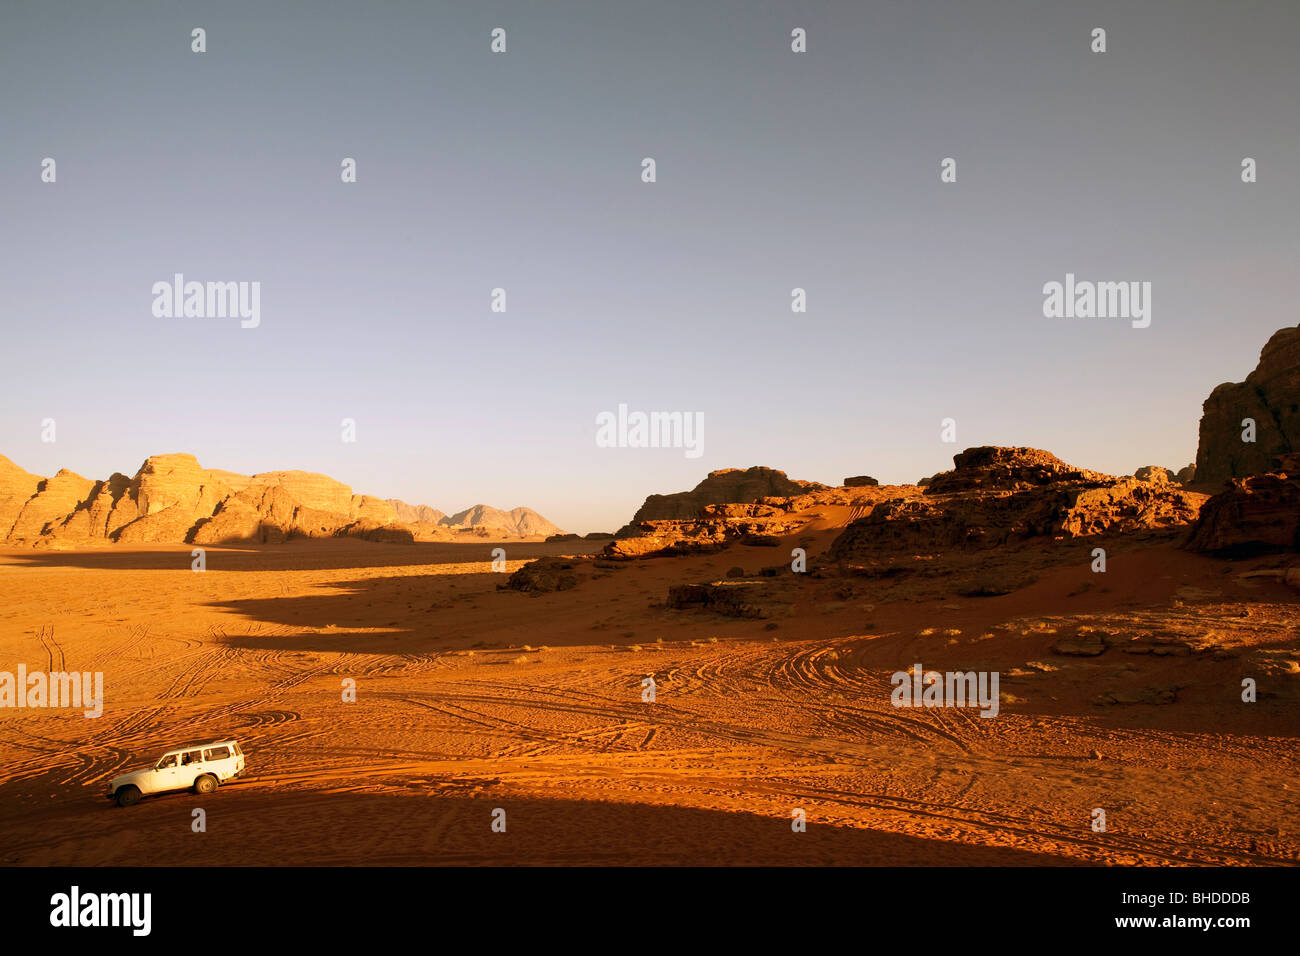 Jordan sunset in Wadi Rum and the valley of the moon - Stock Image